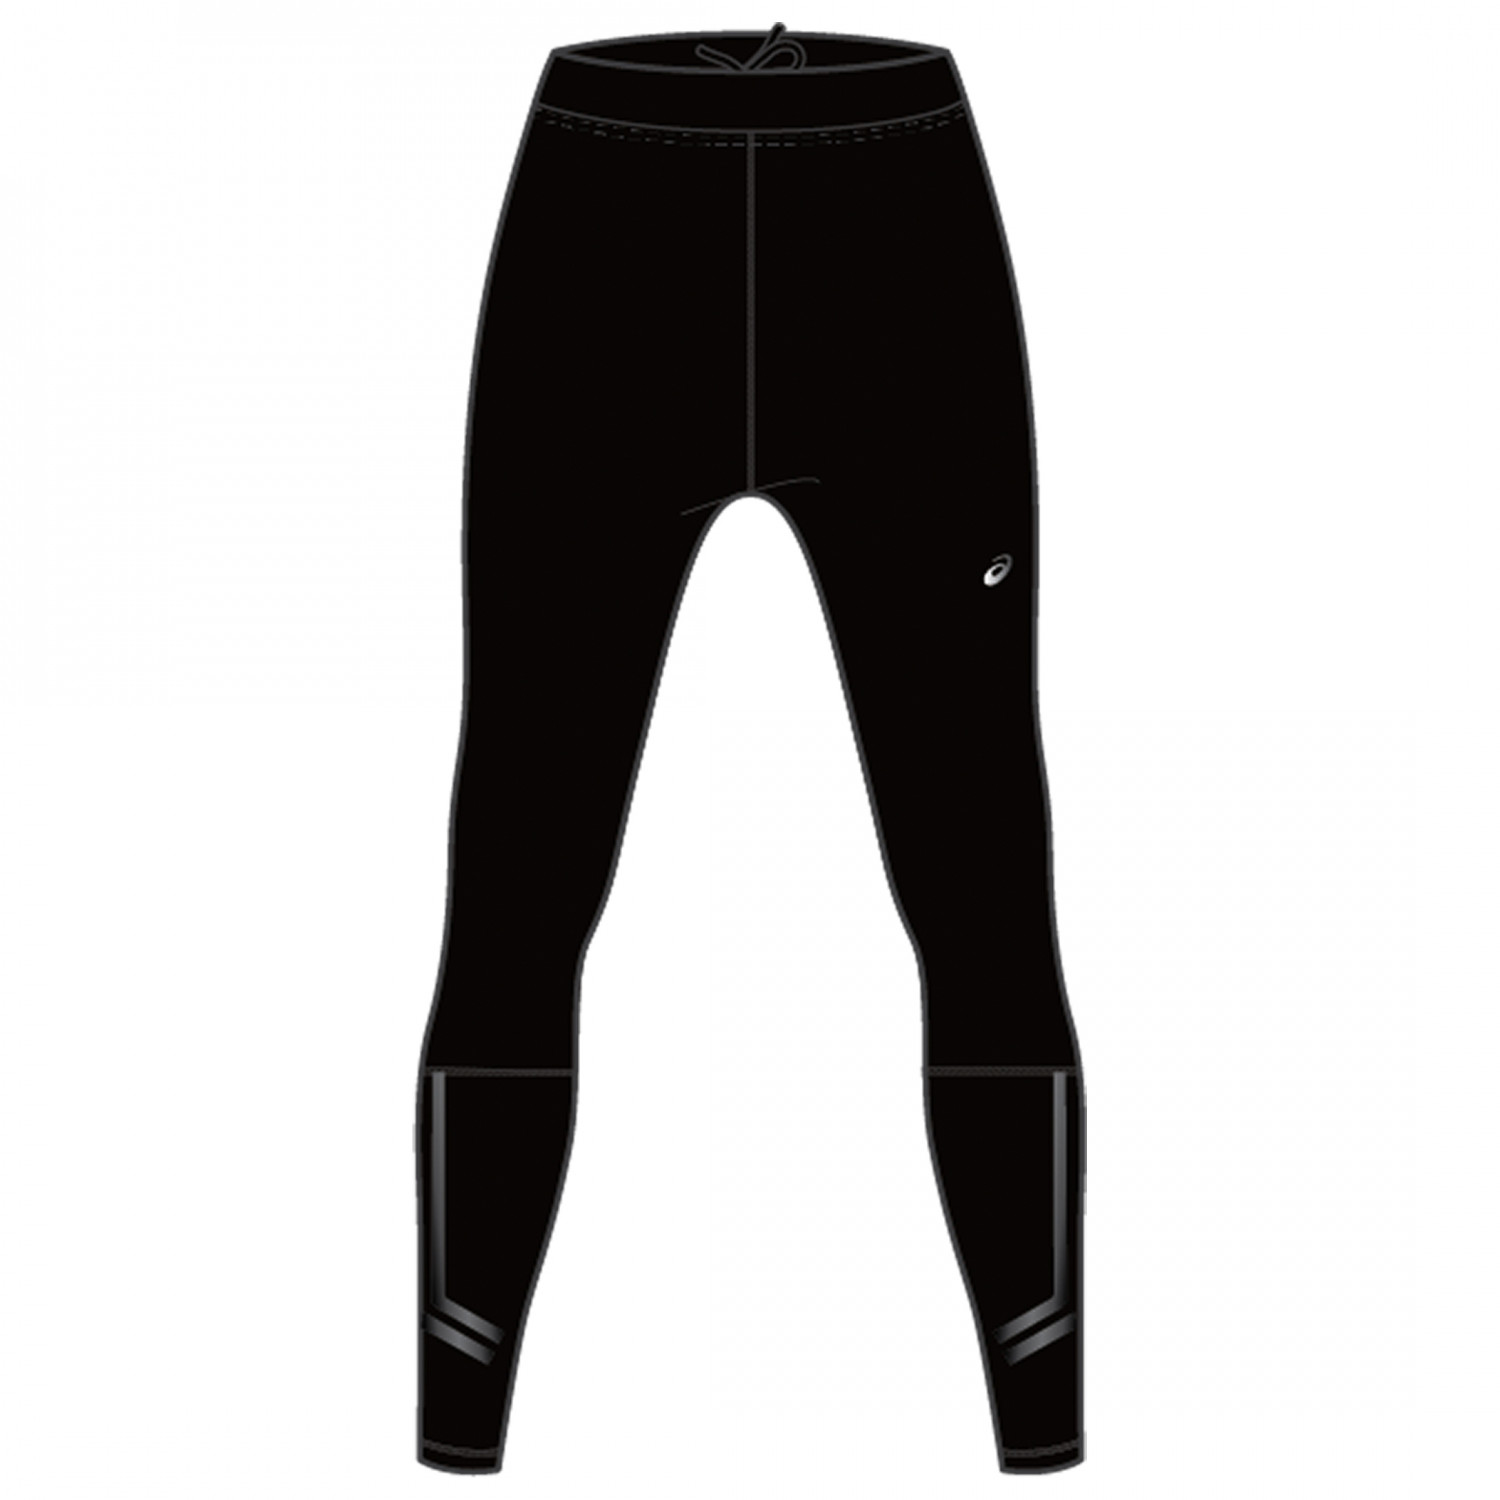 Asics Icon Winter Tight - Running trousers Women's | Buy online ...